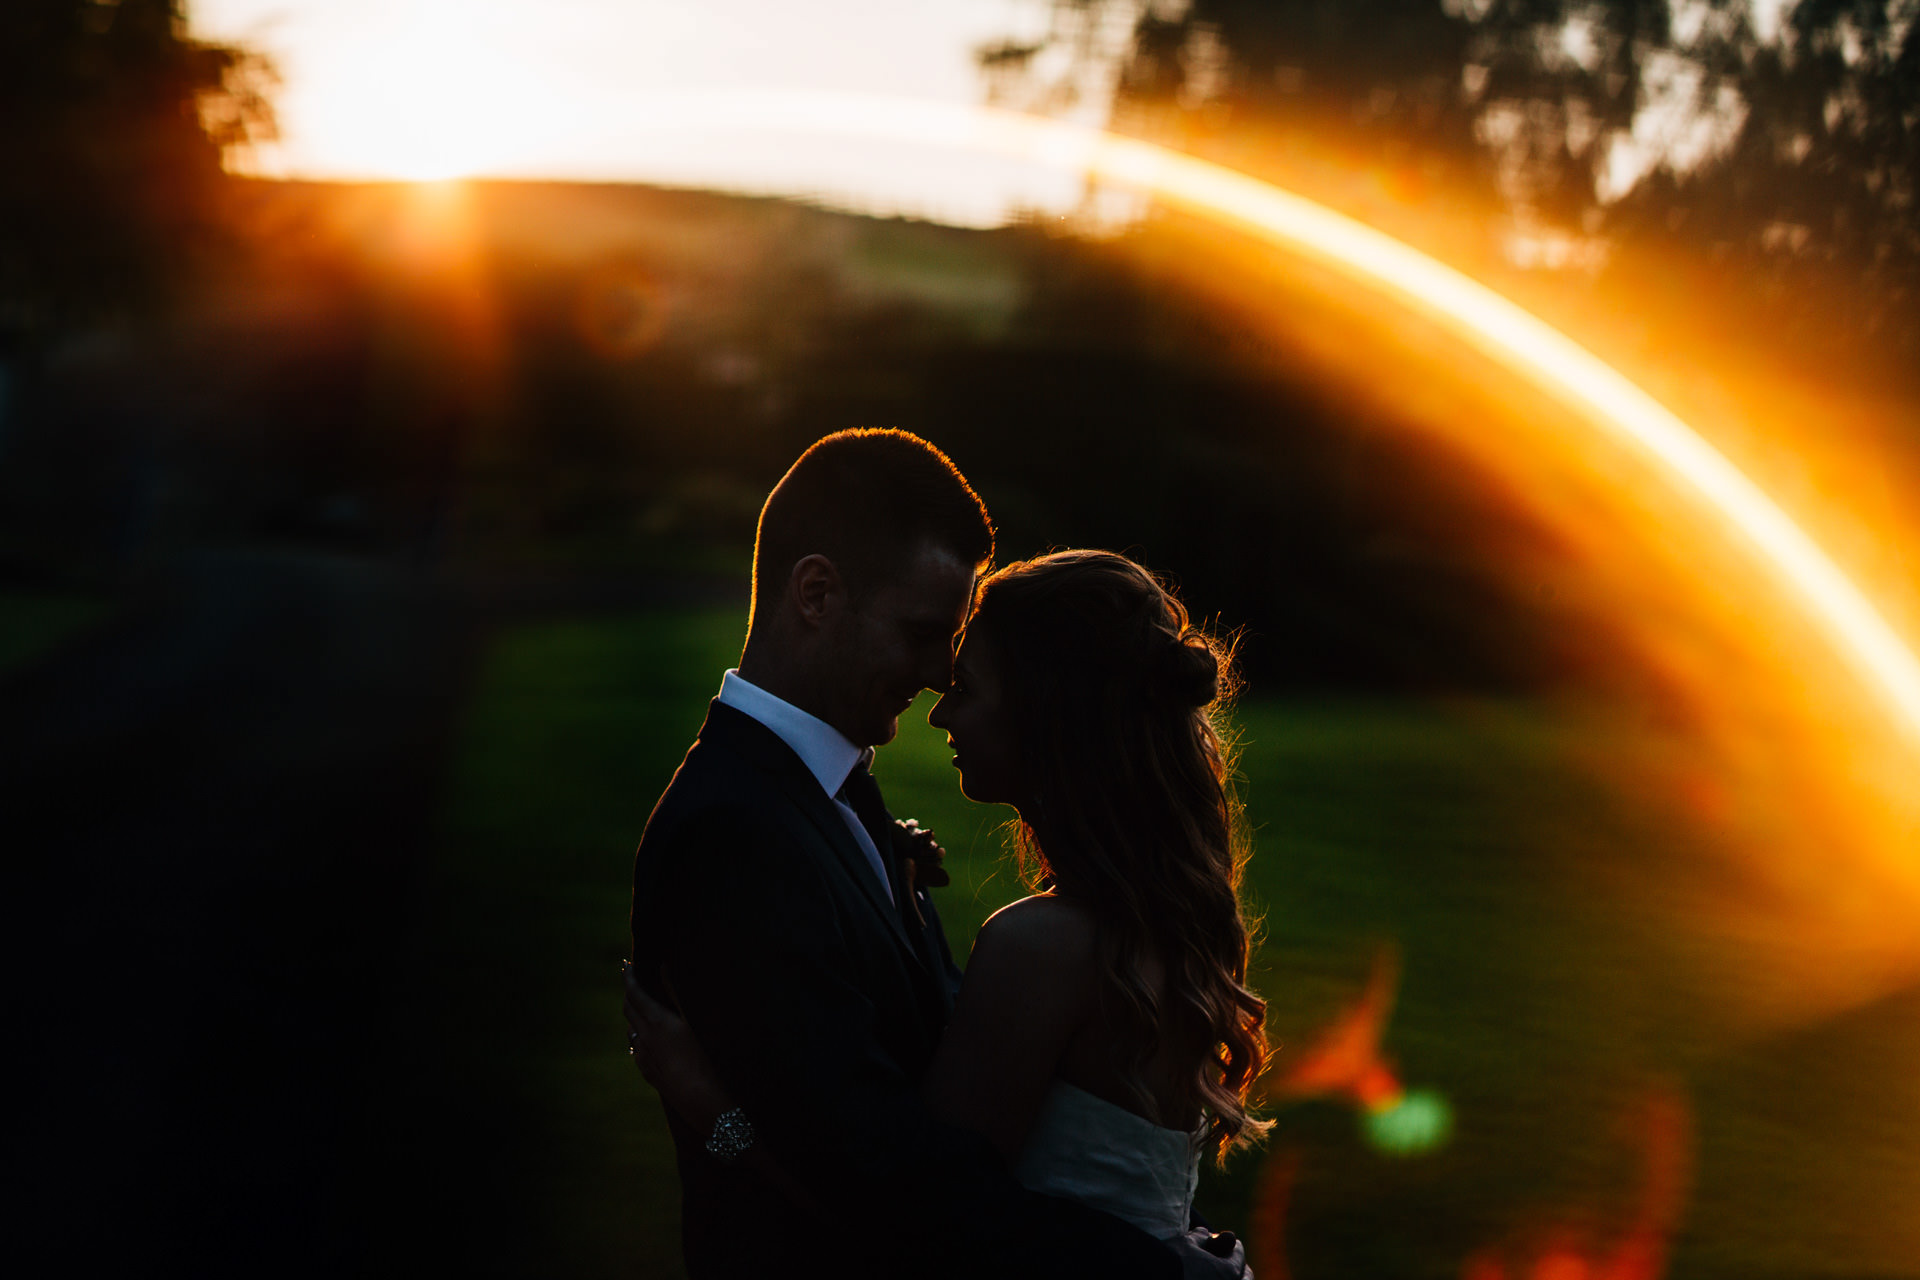 Best wedding photography 2016 - sunset silhouette of couple